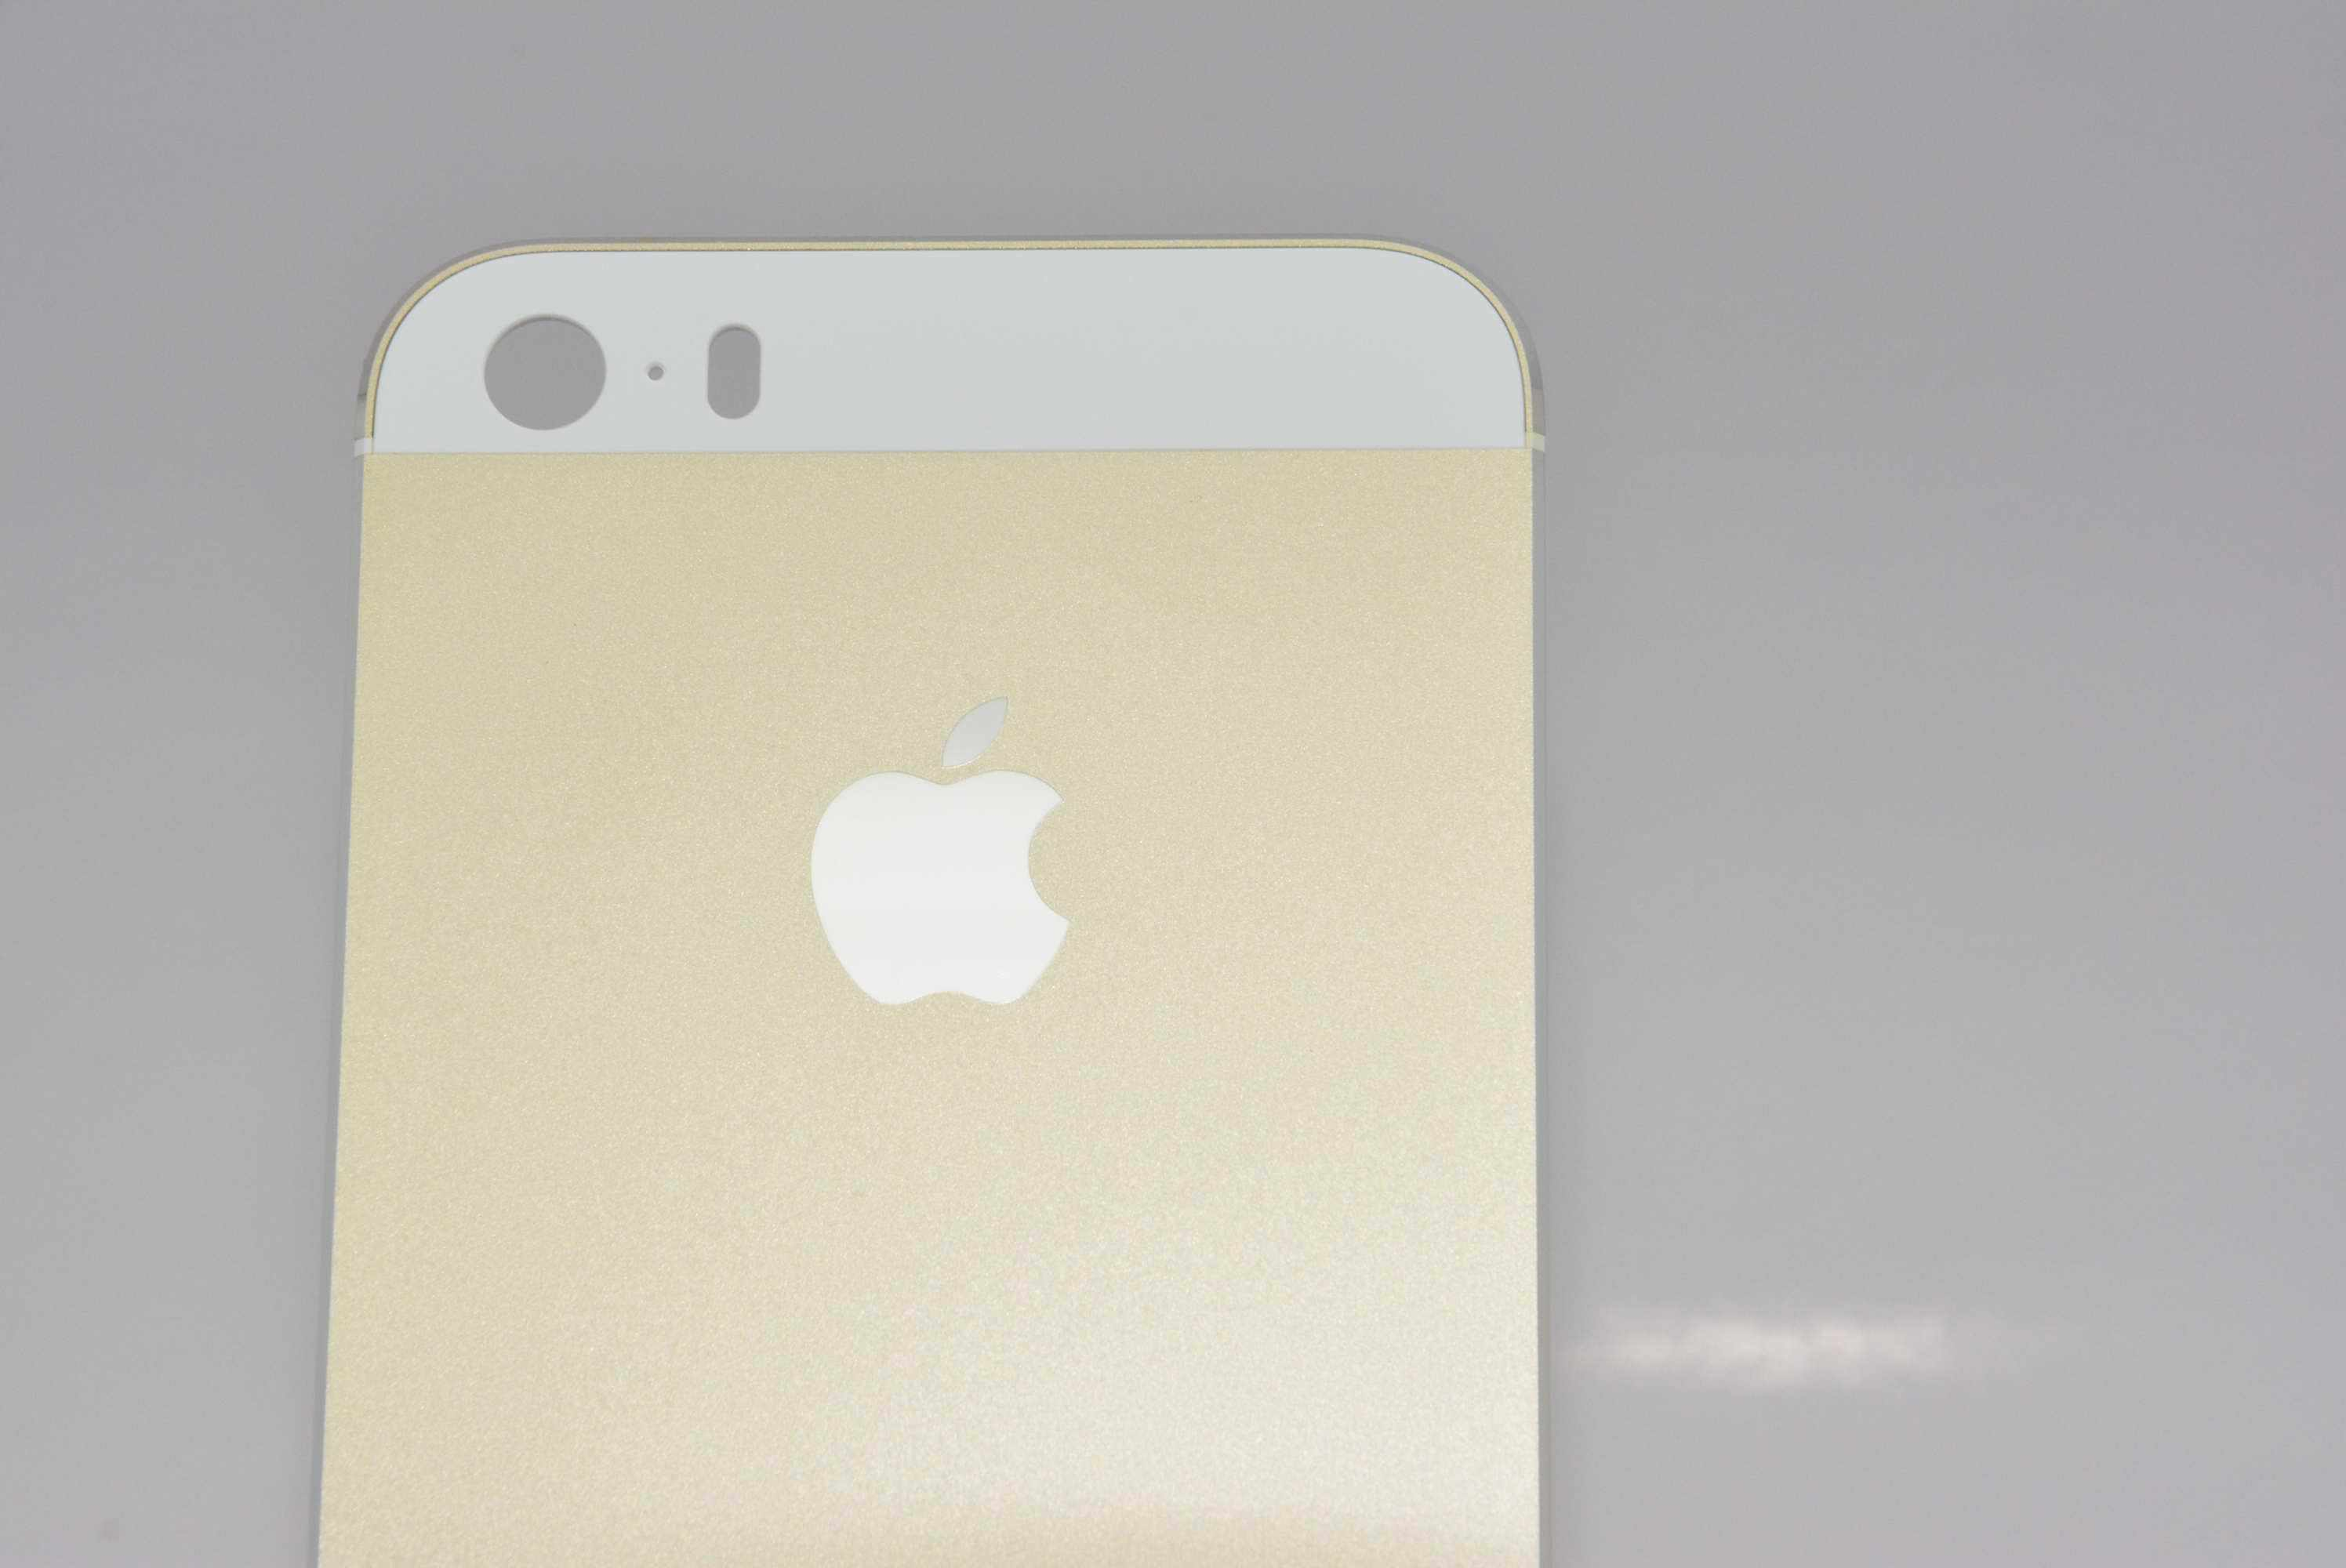 Gold iPhone 5S (Sonny Dickson 009)